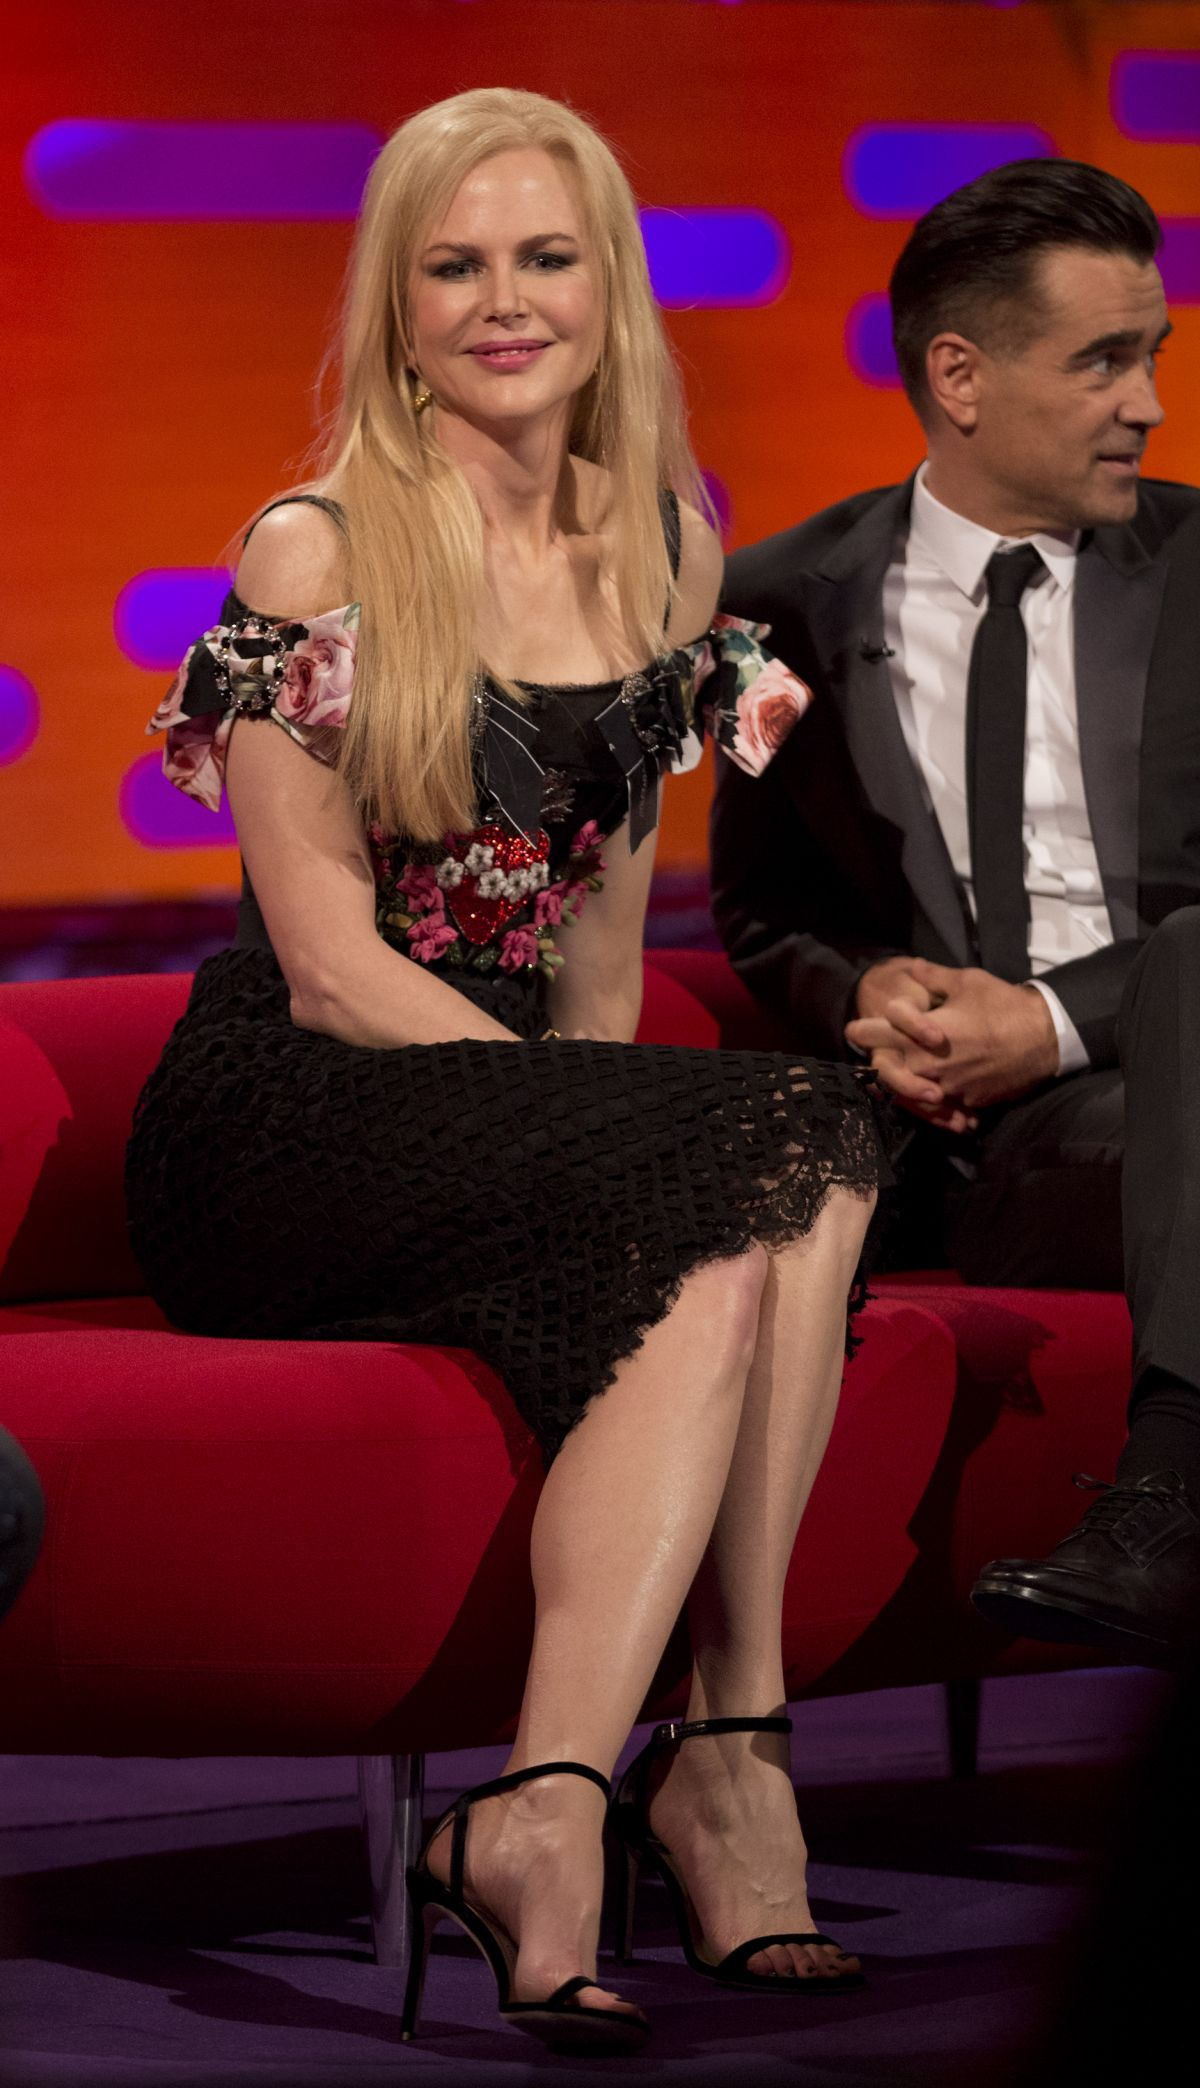 Jane Fonda, Nicole Kidman, Colin Farrell, Bryan Cranston, Matt Lucas and Niall Horan during filming of the Graham Norton Show